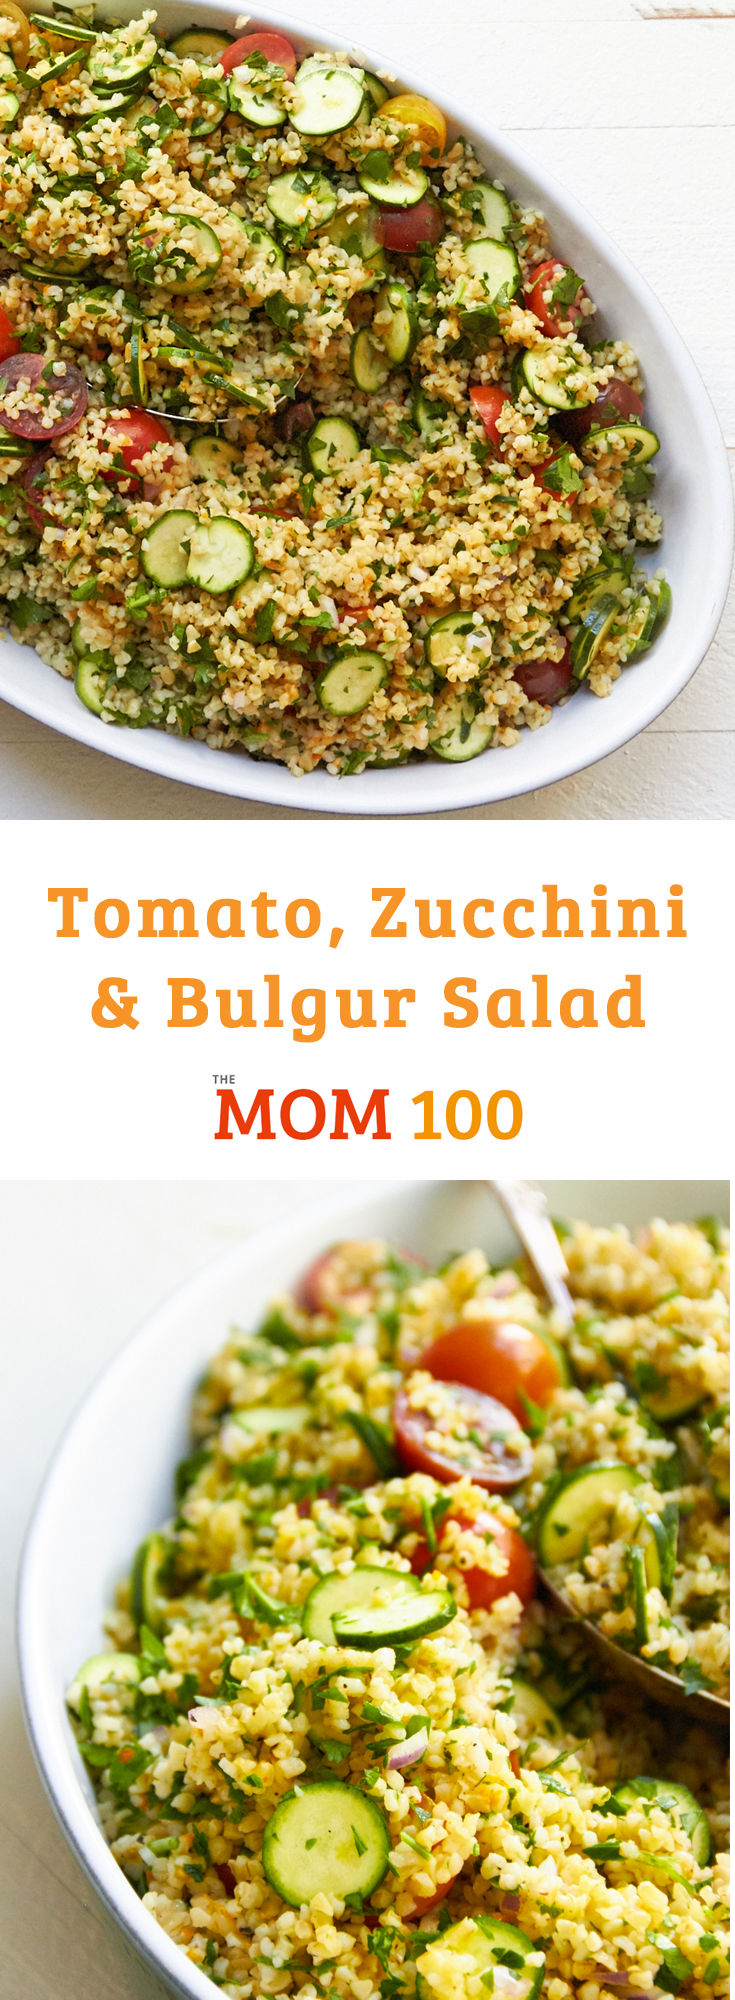 This recipe makes a very generous amount of Tomato, Zucchini and Bulgur Salad, so it's a good thought for potlucks, or a healthy side dish for the whole week.